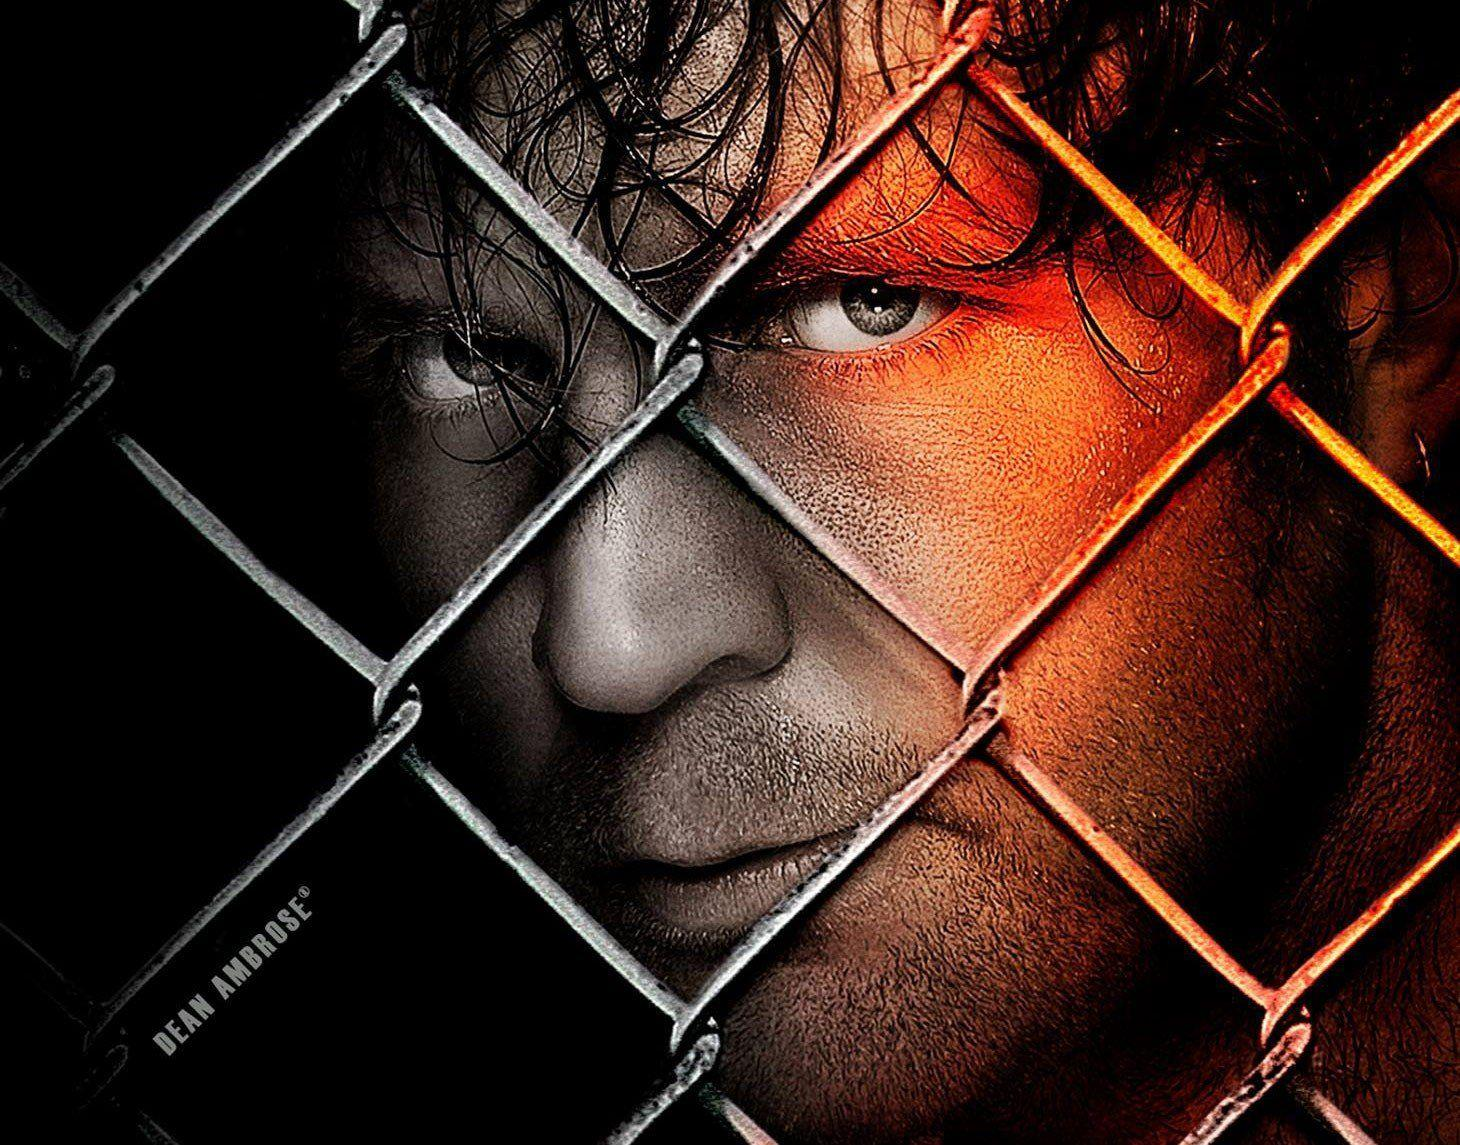 WWE Hell in a Cell 2014: Dean Ambrose and Seth Rollins steal the